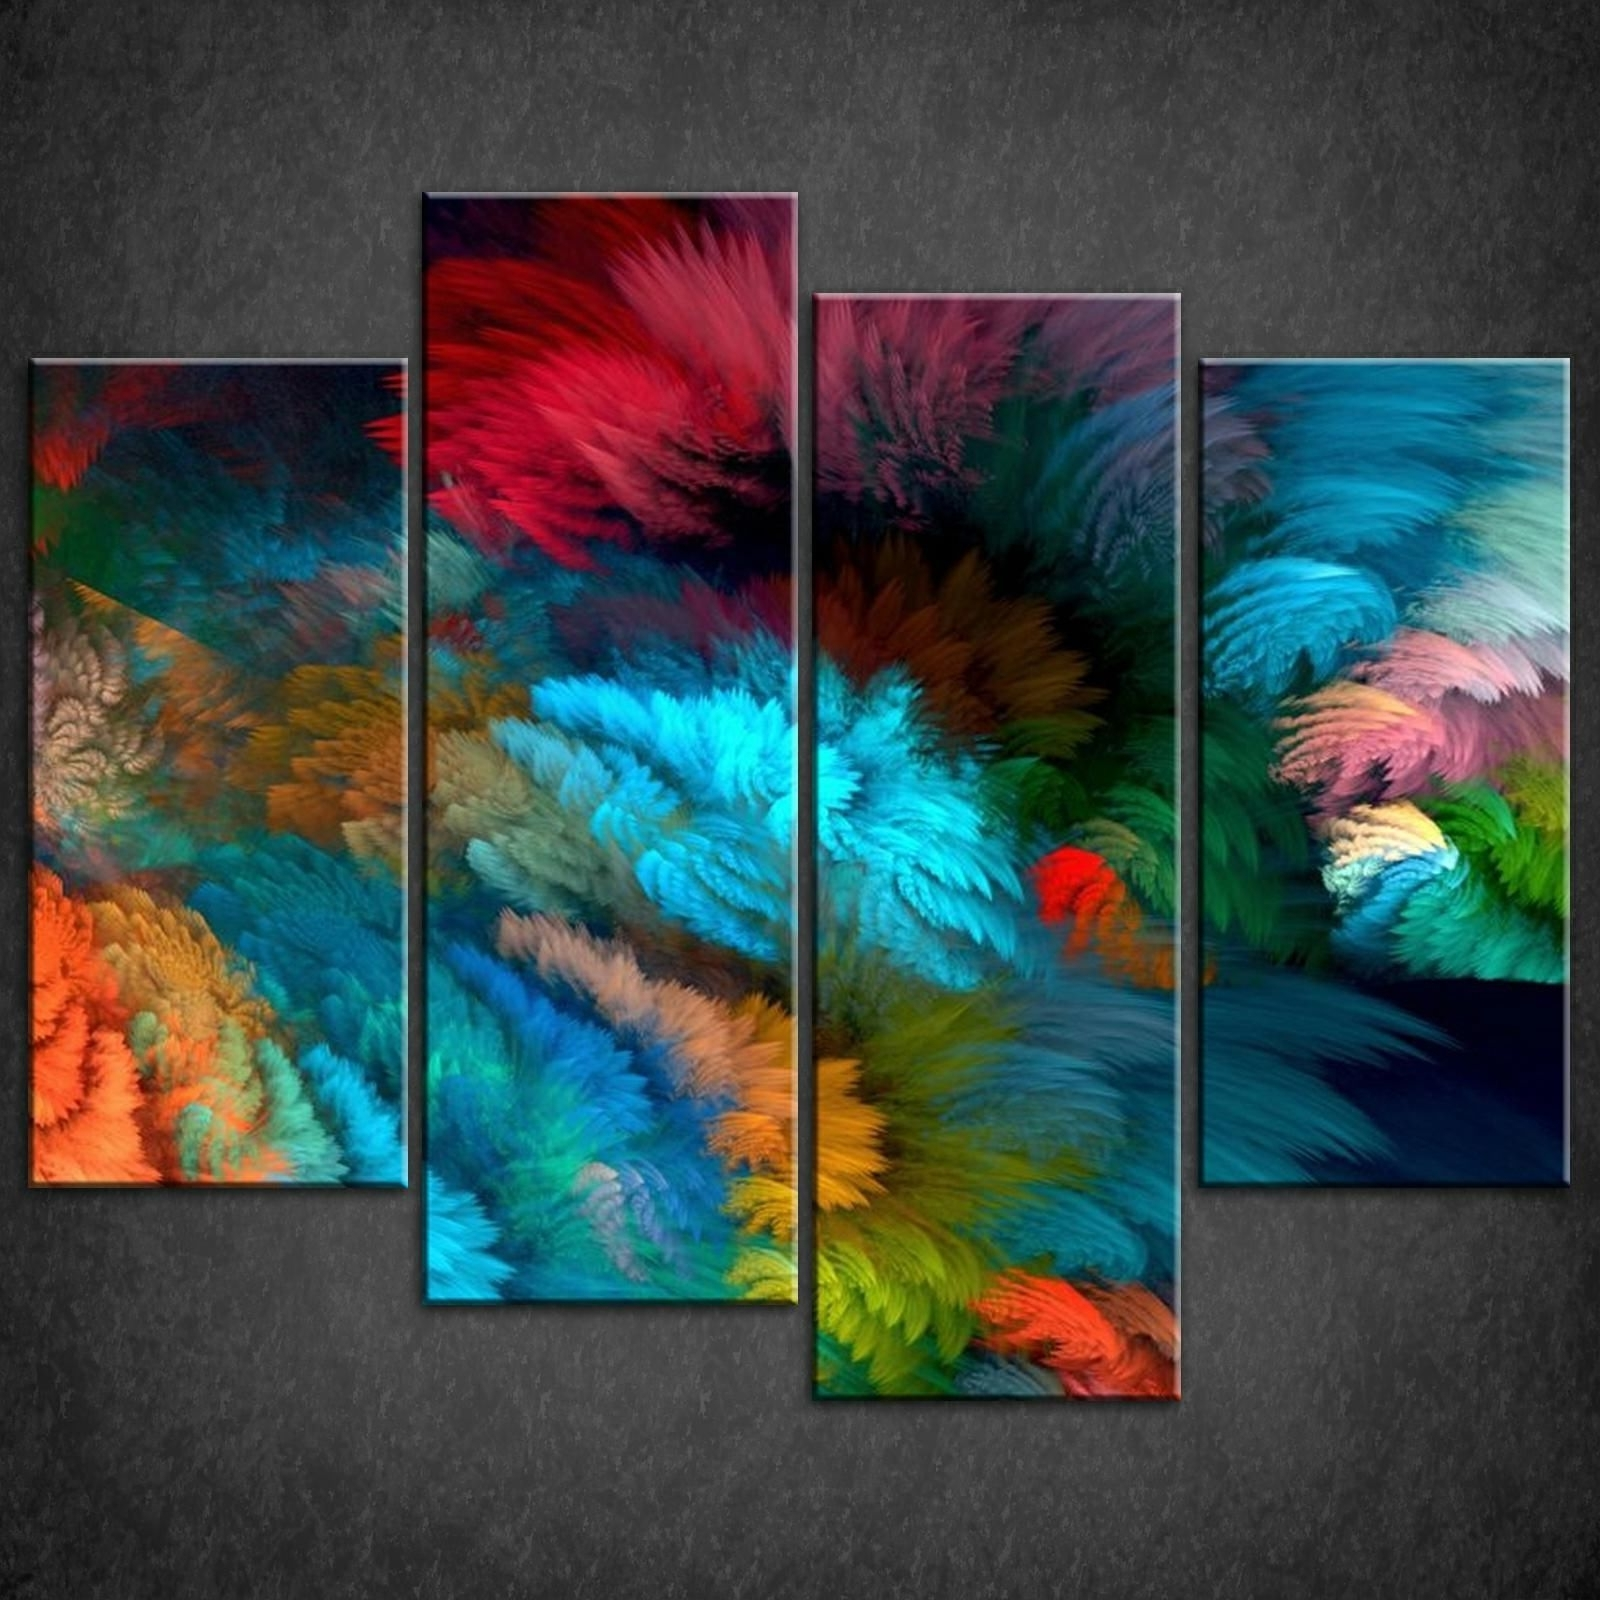 Decor: Large Abstract Colourful Split Canvas Wall Art Pictures Prints Intended For Favorite Large Framed Canvas Wall Art (View 15 of 15)